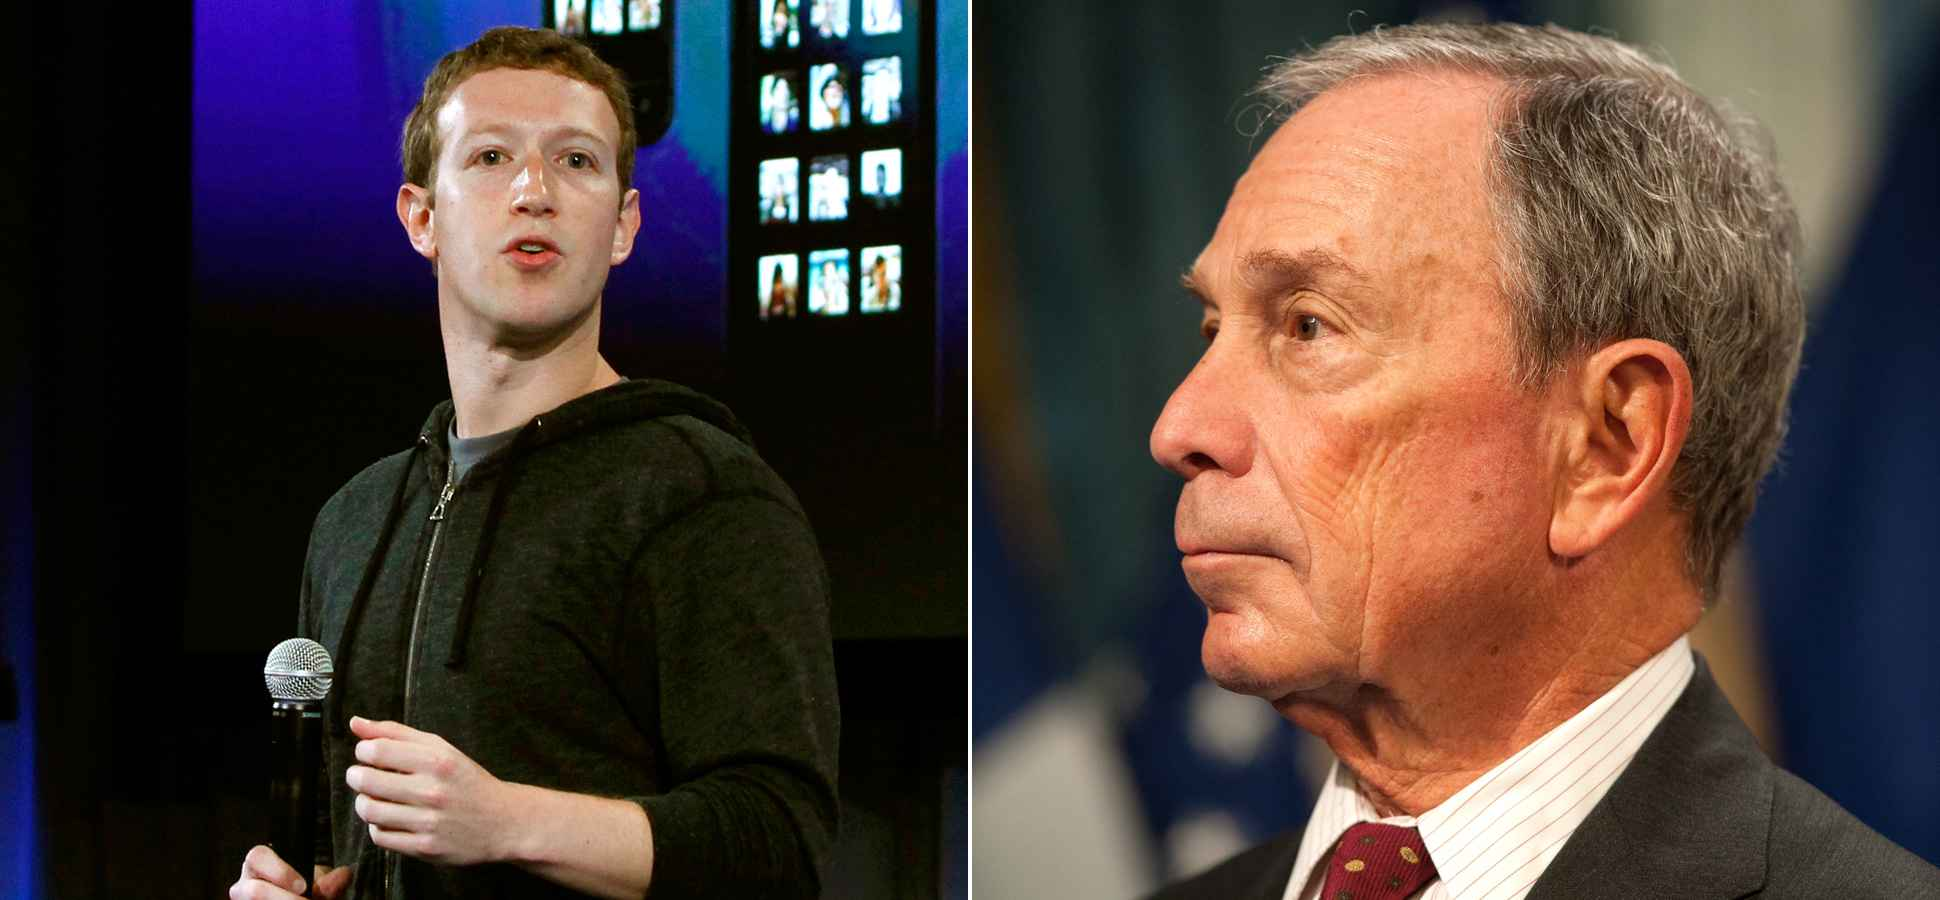 Why Mark Zuckerberg and Michael Bloomberg Are Having the Wrong Debate Over Job Training